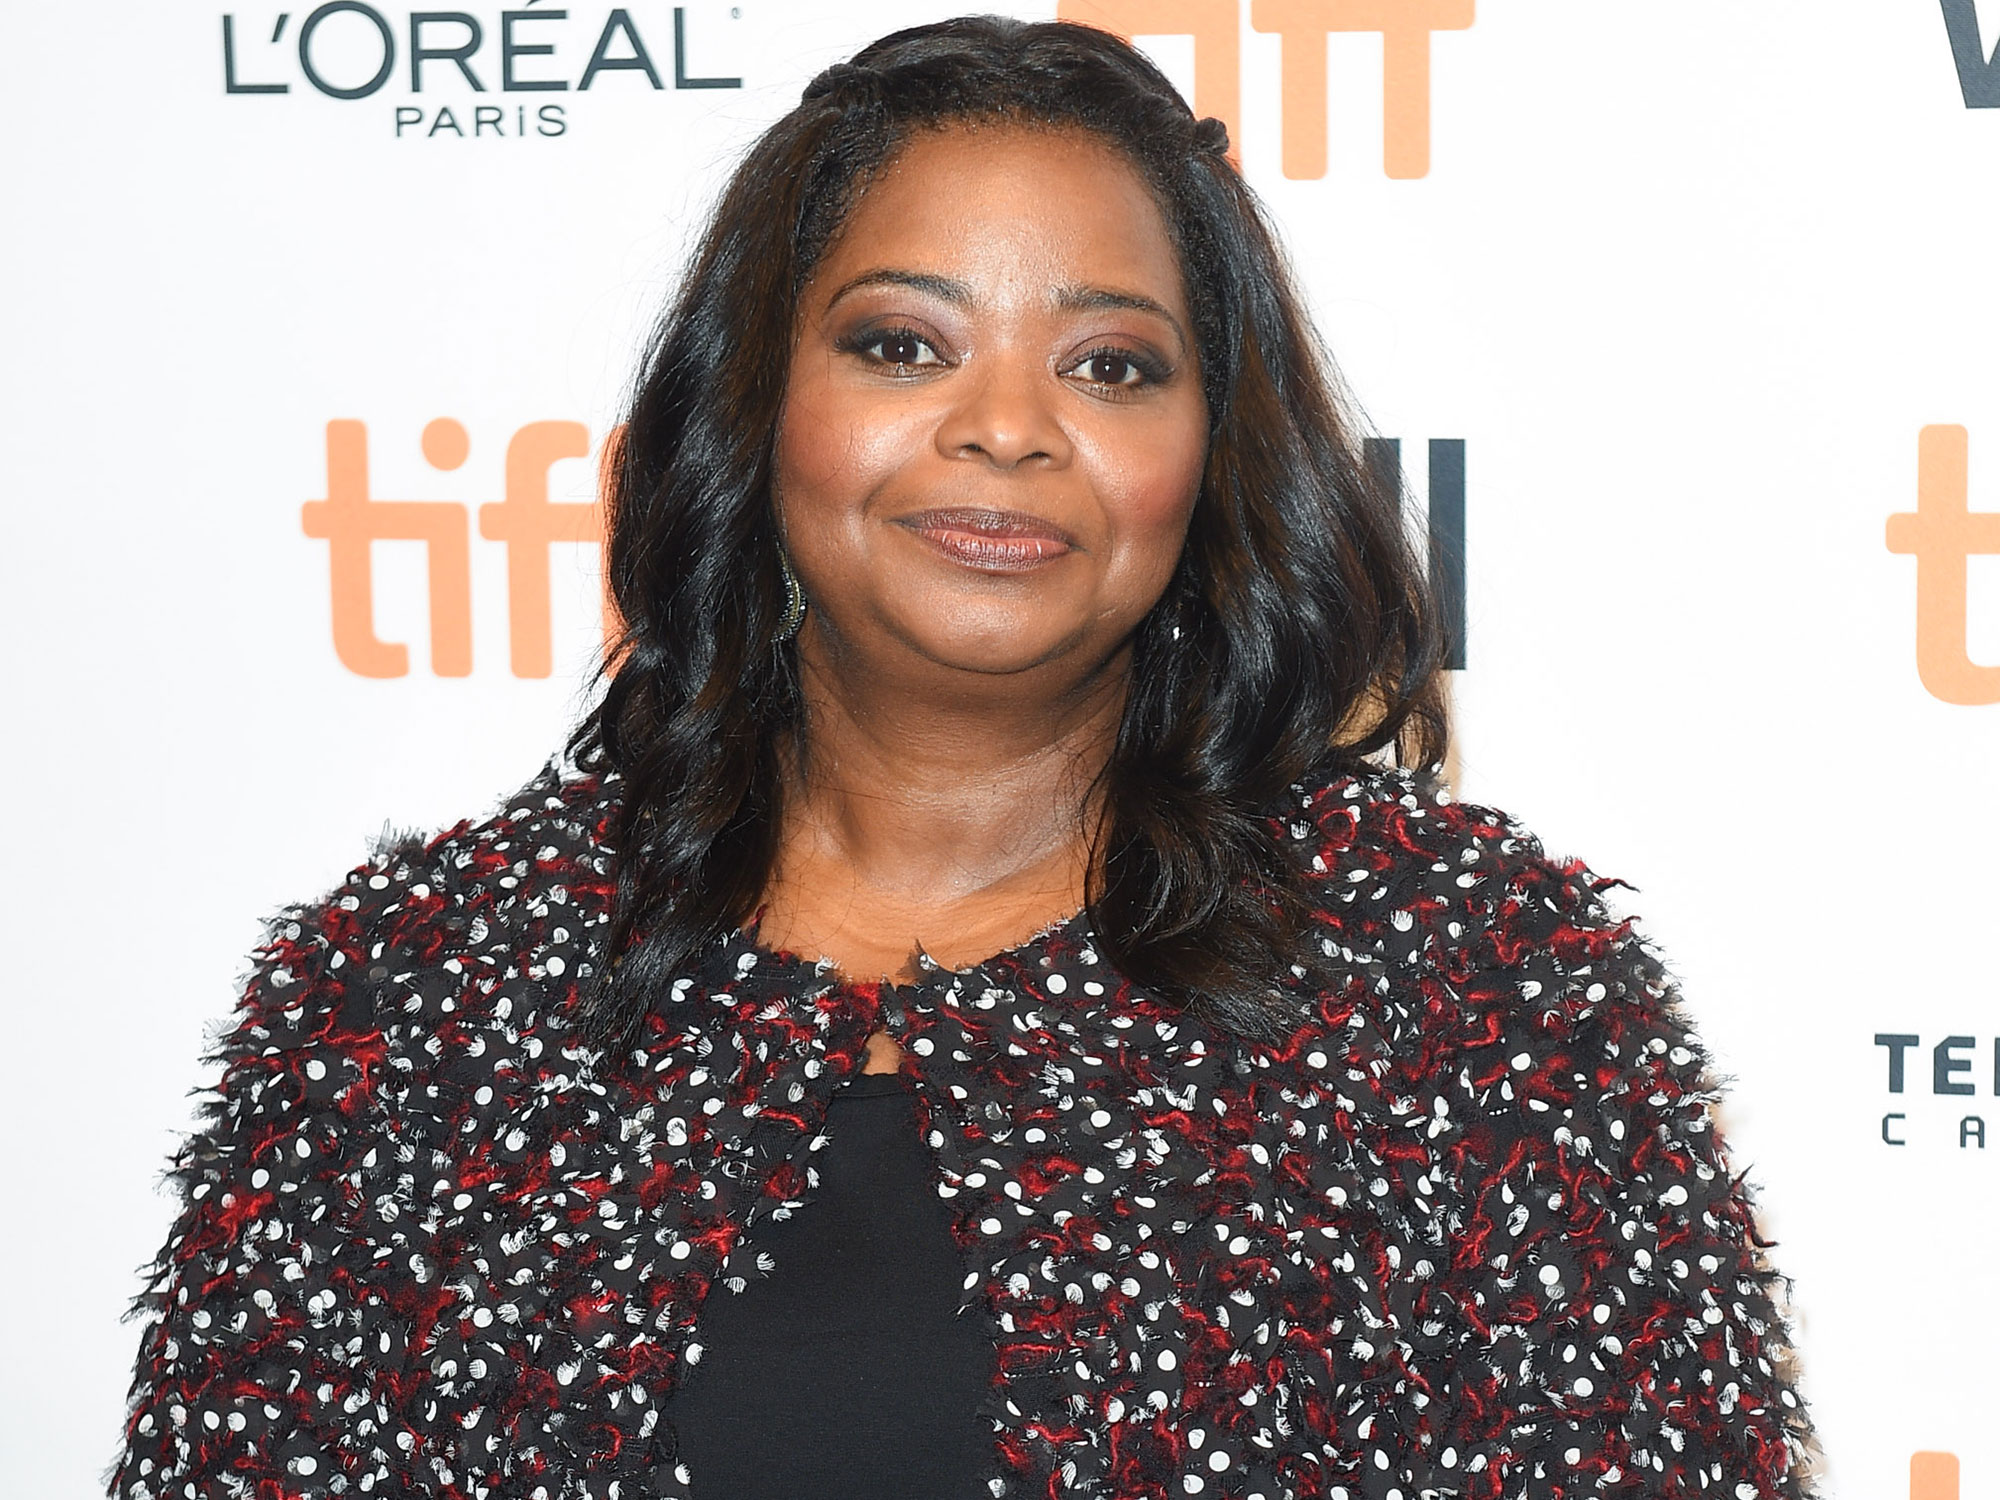 TORONTO, ON - SEPTEMBER 10: Actress Octavia Spencer attends the 'Hidden Figures' premiere during the 2016 Toronto International Film Festival at TIFF Bell Lightbox on September 10, 2016 in Toronto, Canada. (Photo by Ernesto Di Stefano Photography/Getty Images)